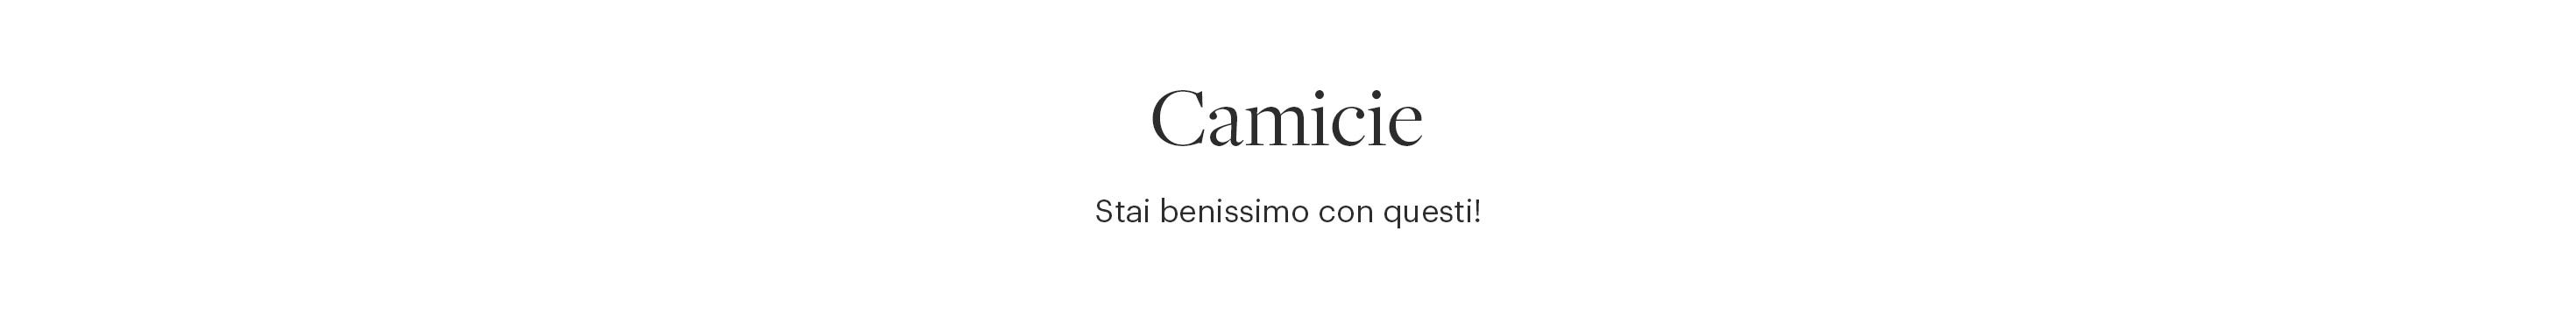 Camicie